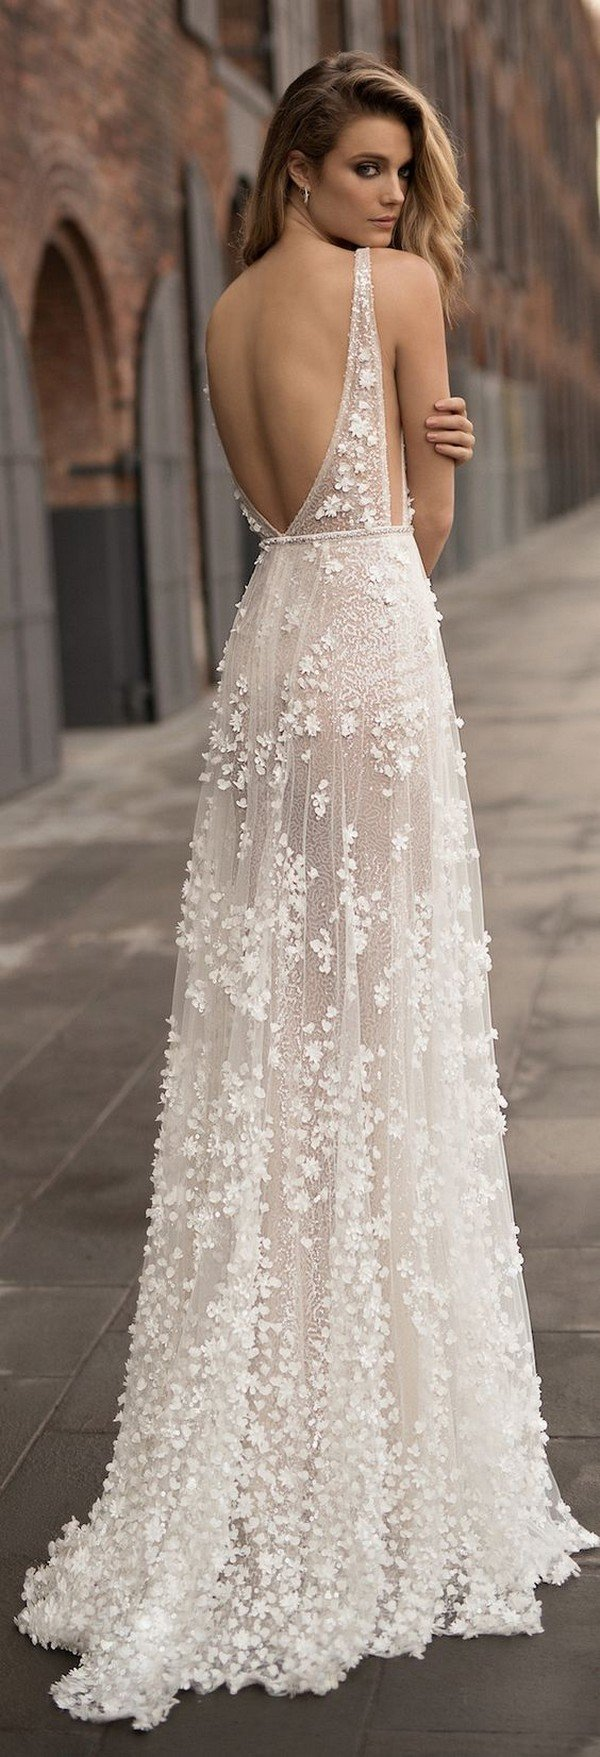 Berta Boho Wedding Dress 2018